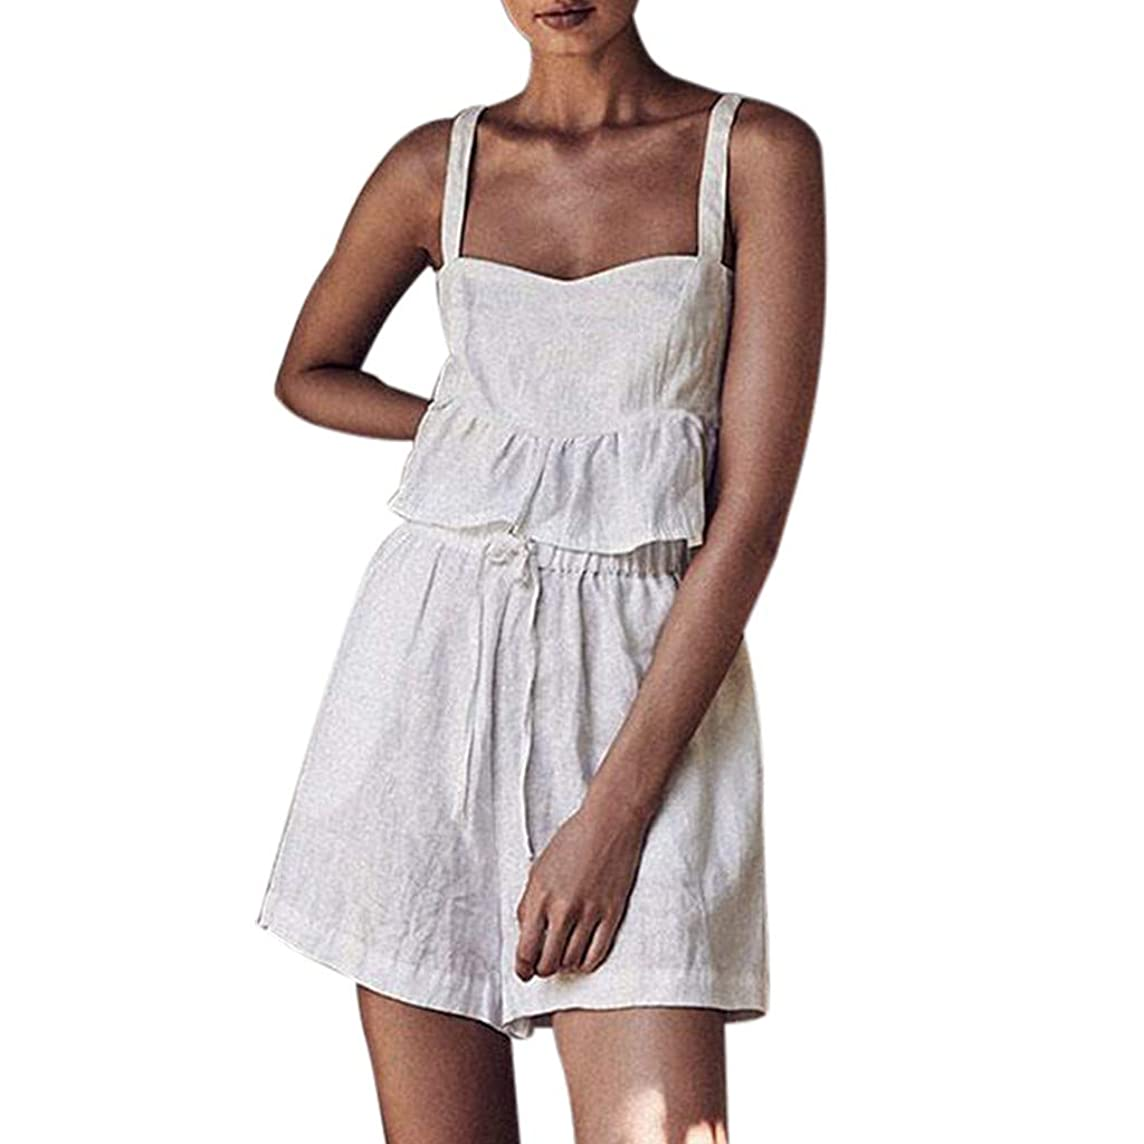 2Piece Womens Sexy Summer Outfits Set,Sleeveless Strappy Cami Ruffle Back Smocked Crop Top Drawstring Shorts Suit